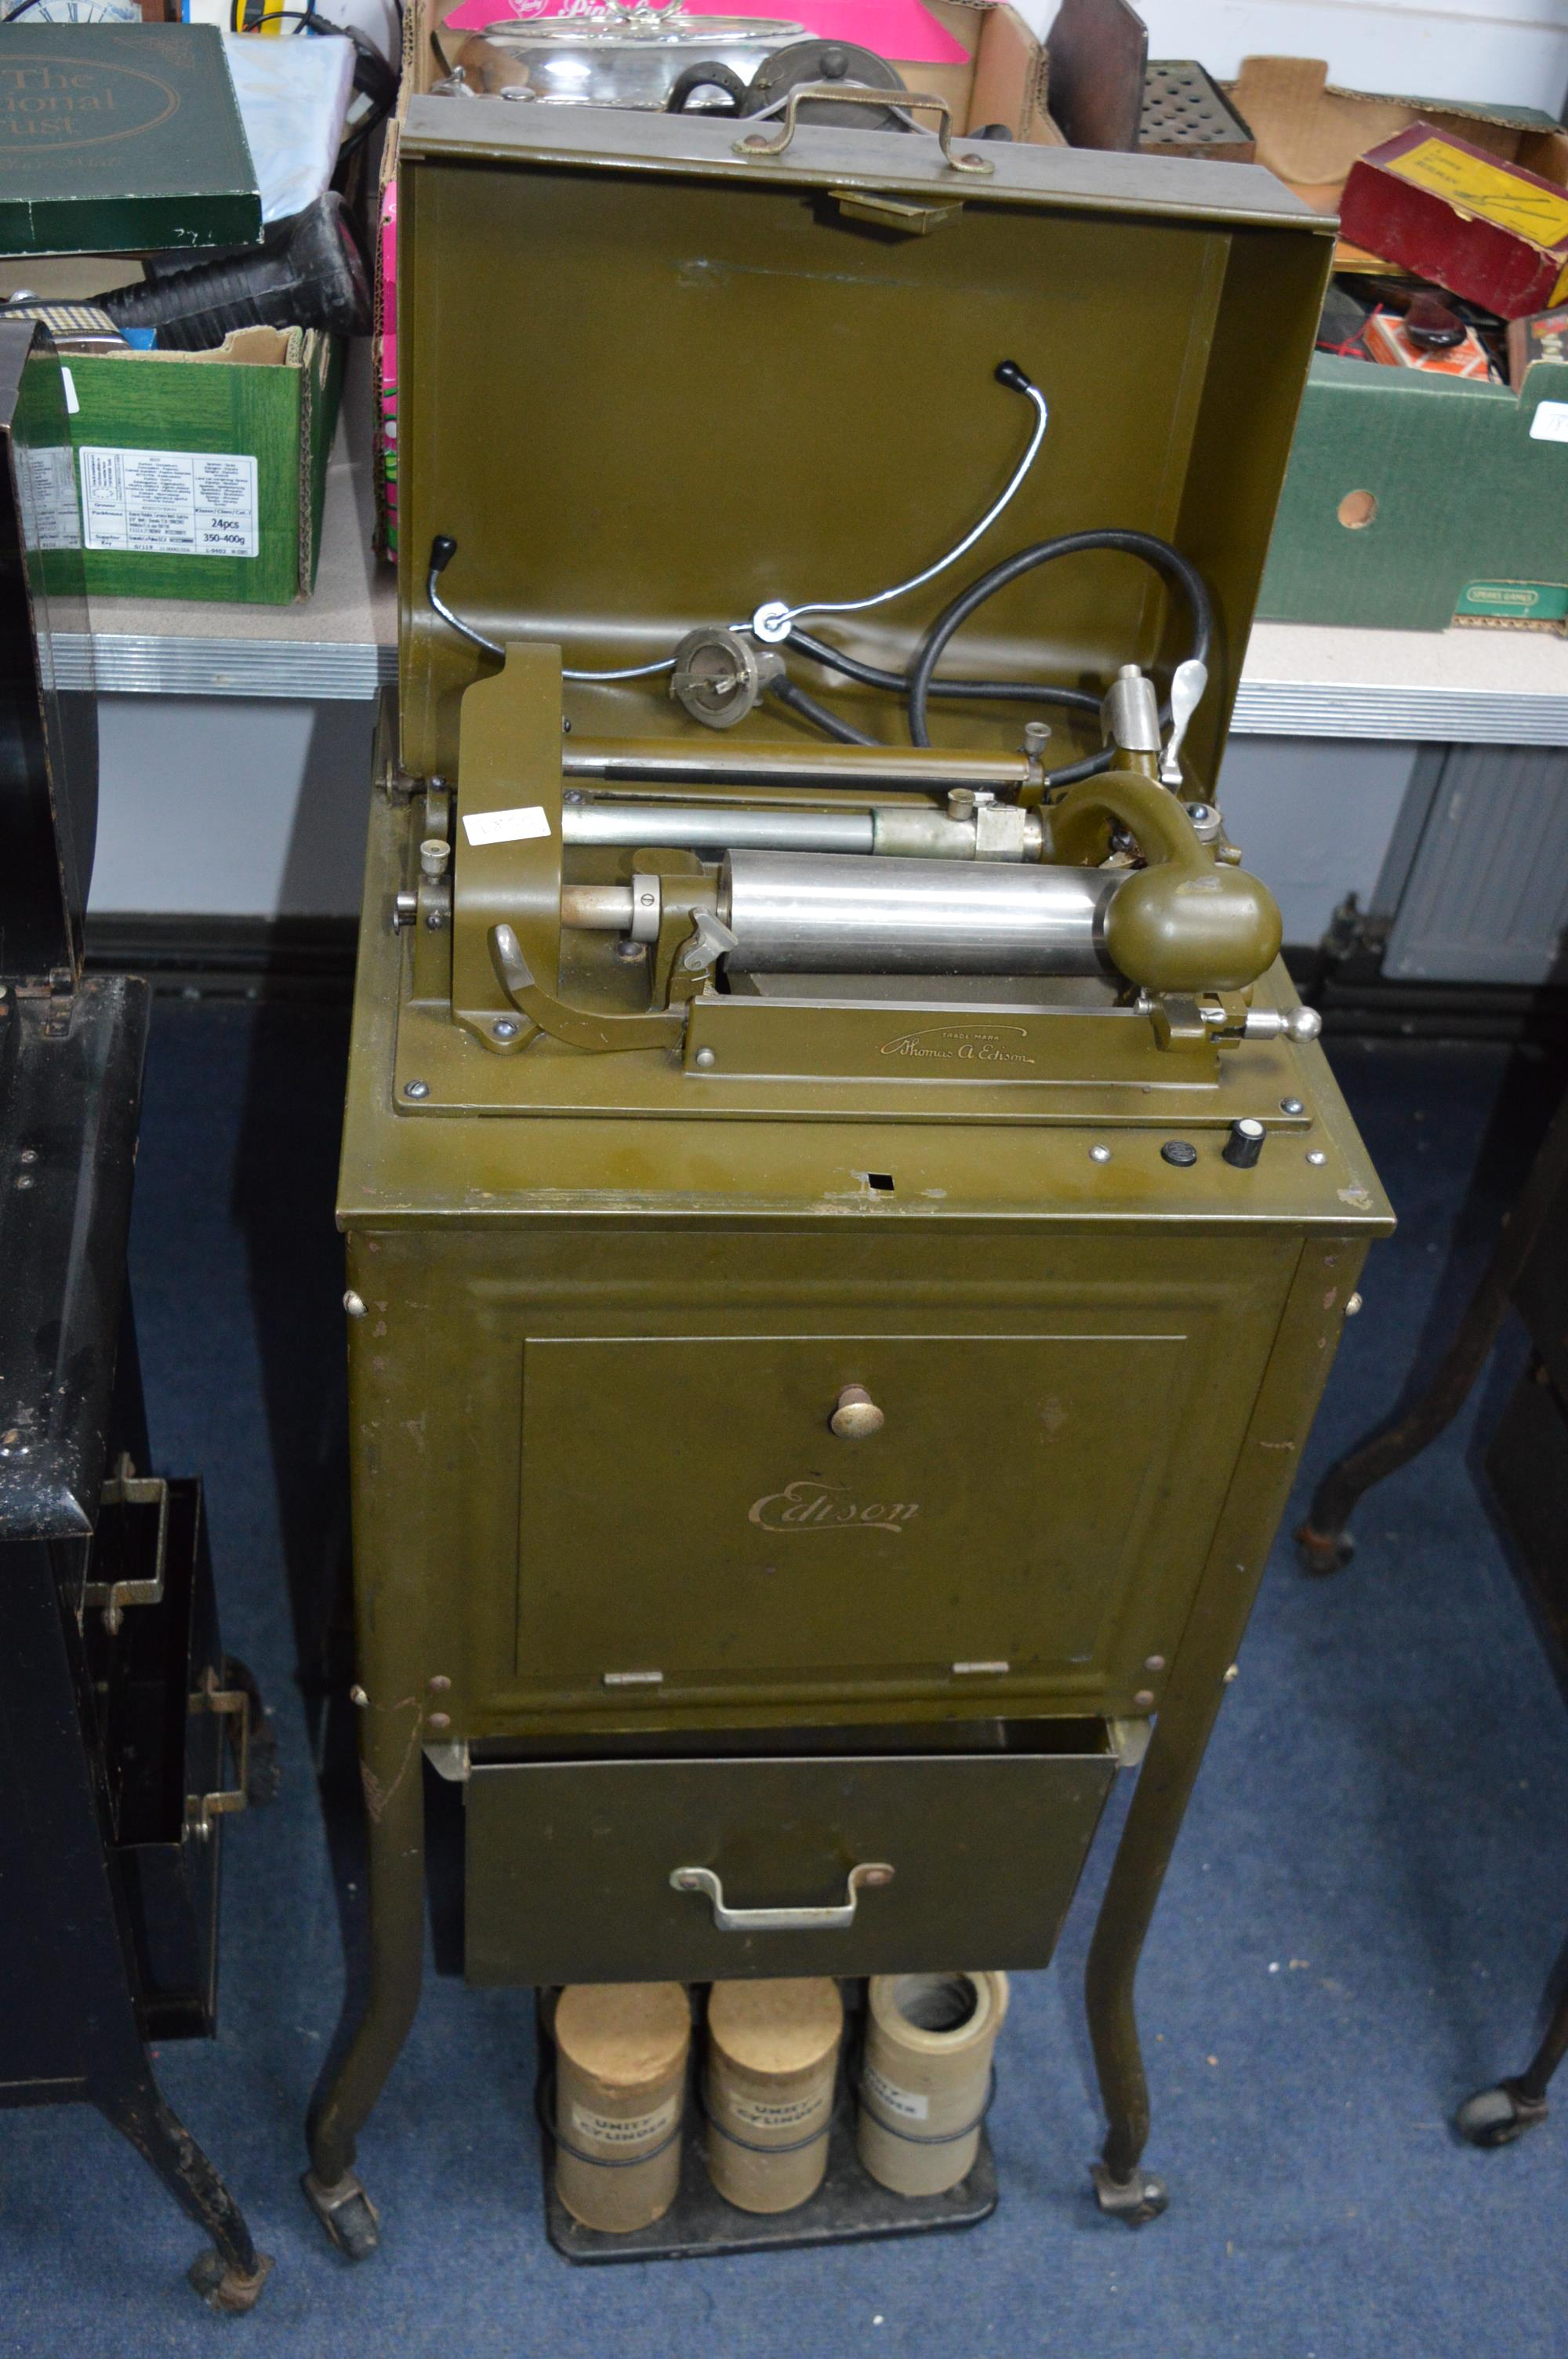 Military Edition Edison Dictaphone Shaving Machine in Cabinet on Wheel, plus Six Cylinders in Rack